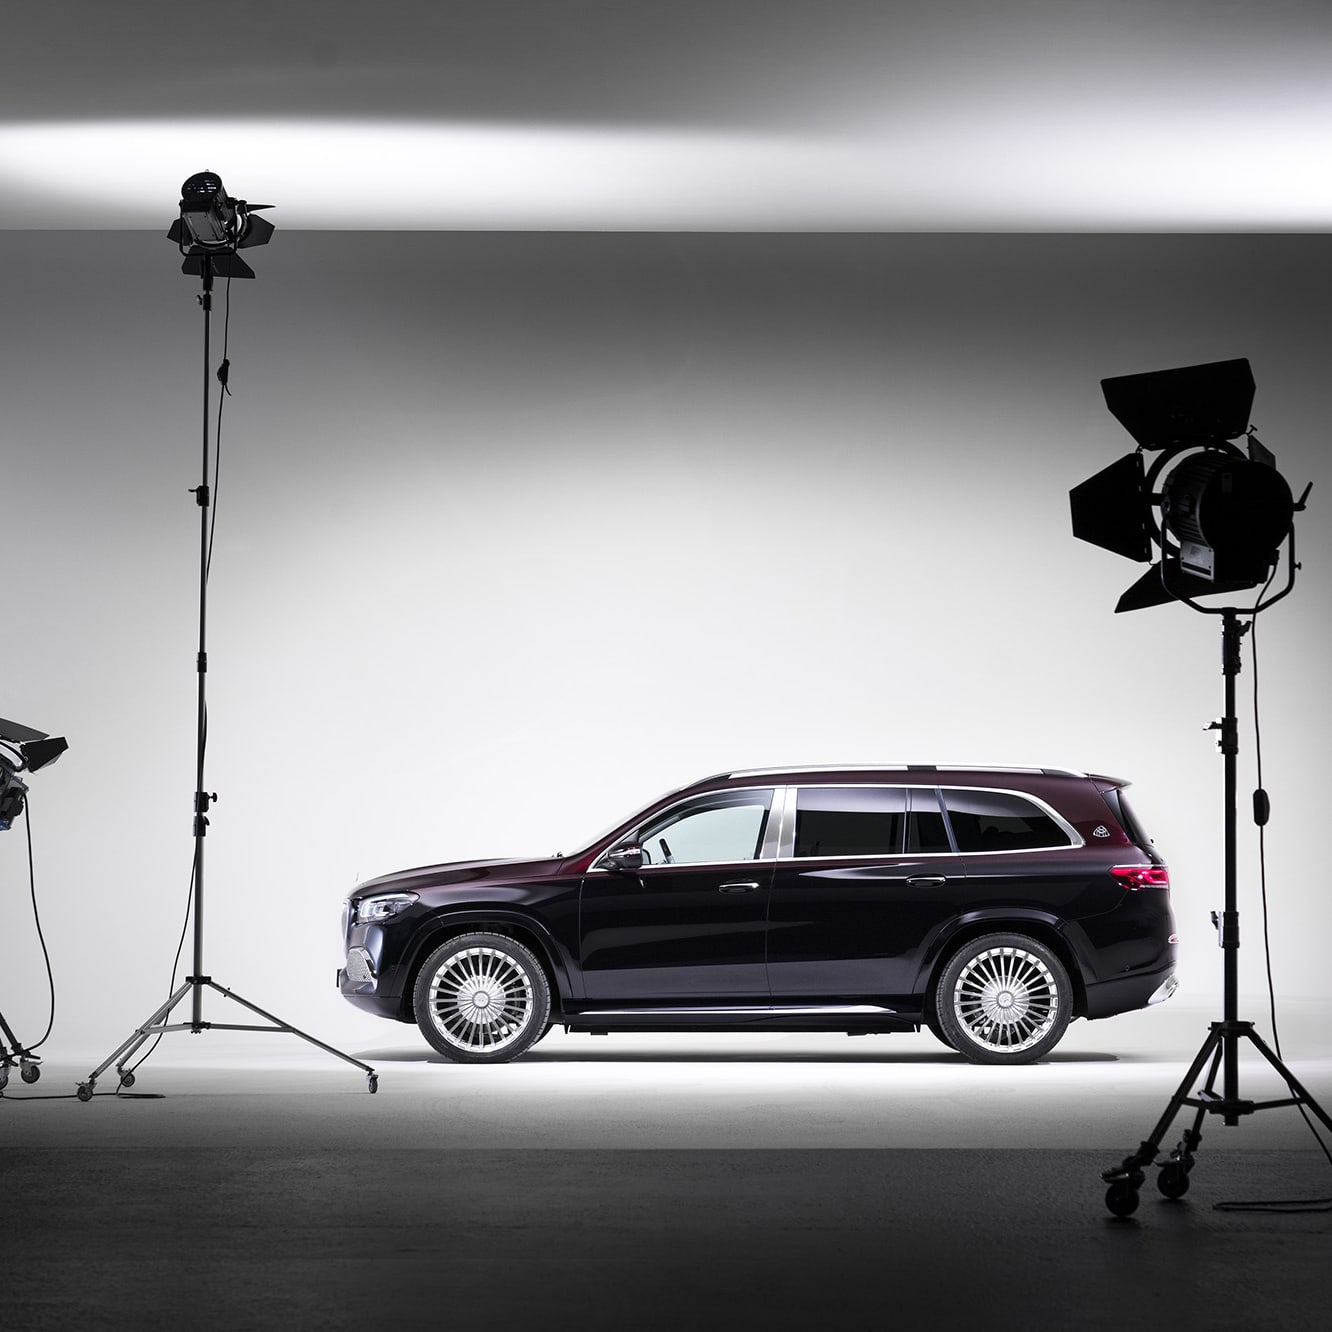 The brand new Maybach GLS is based on Mercedes' largest suv with the same model name. Unlike the Mercedes GLS, the Maybach GLS does not have three rows of seats, but instead a luxurious rear seat.